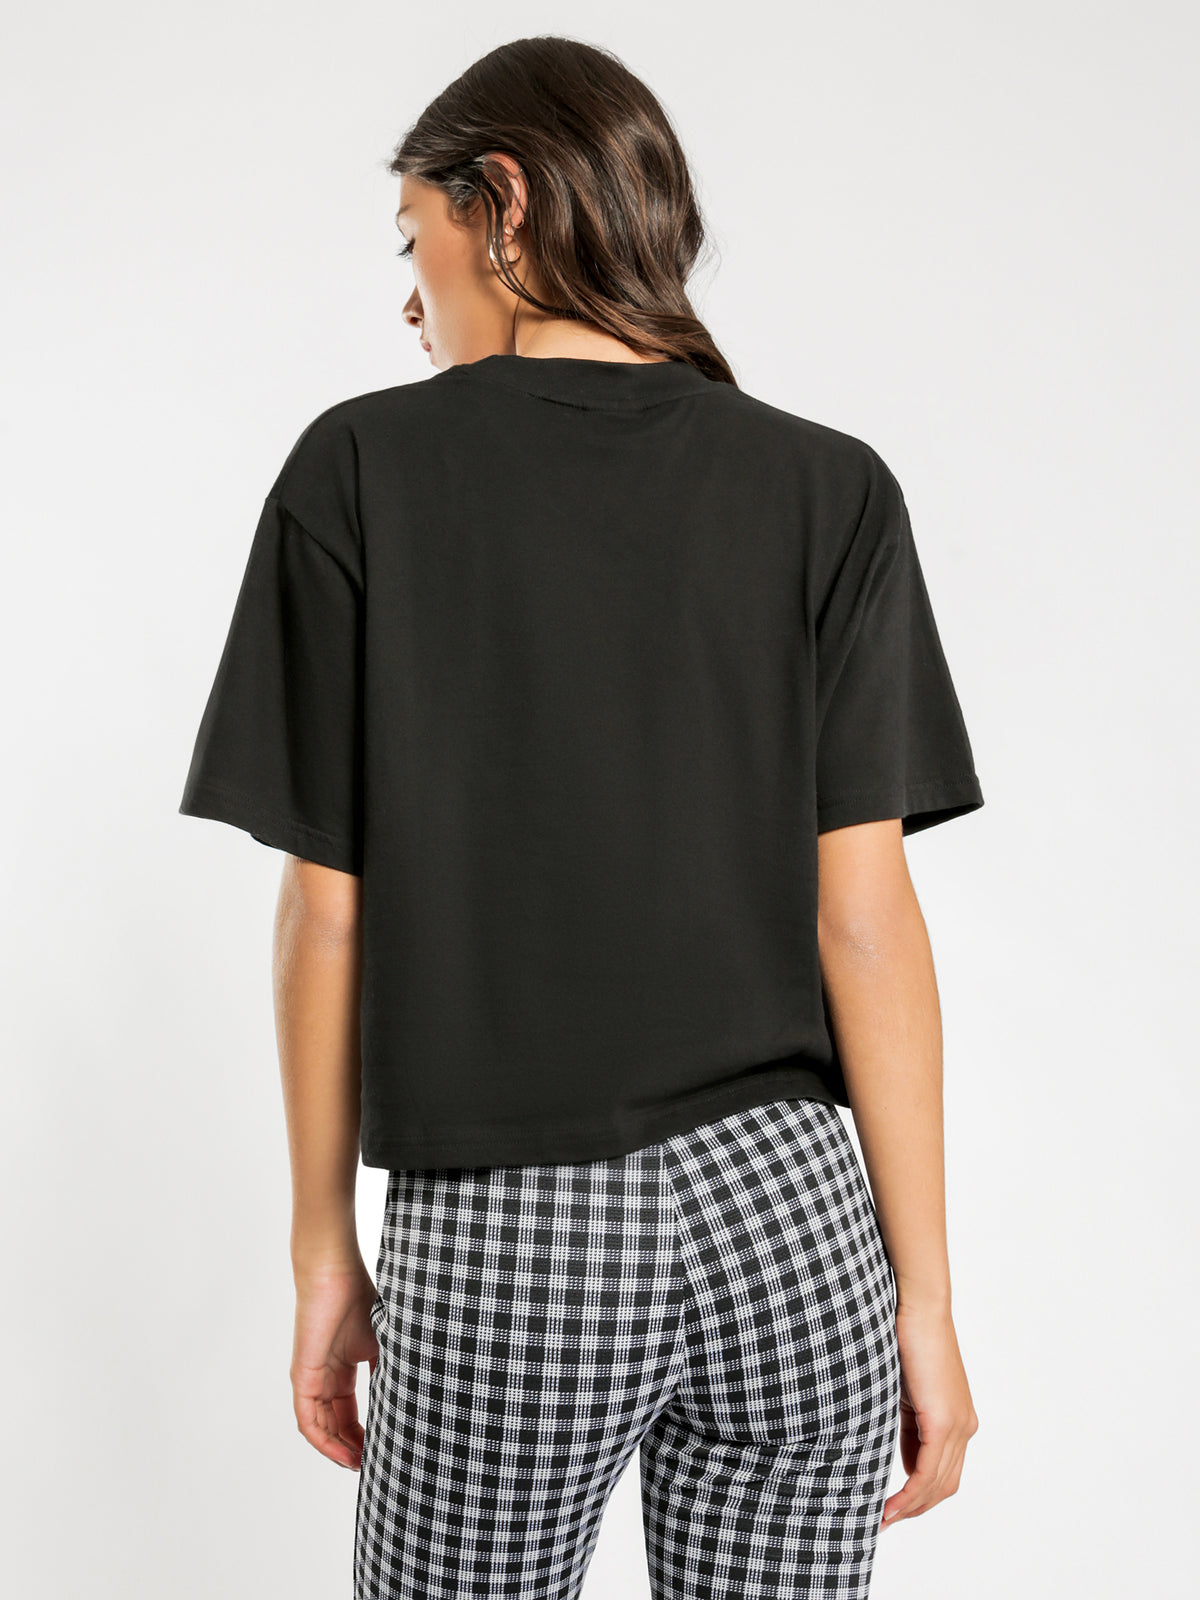 Holt Boxy T-Shirt in Black